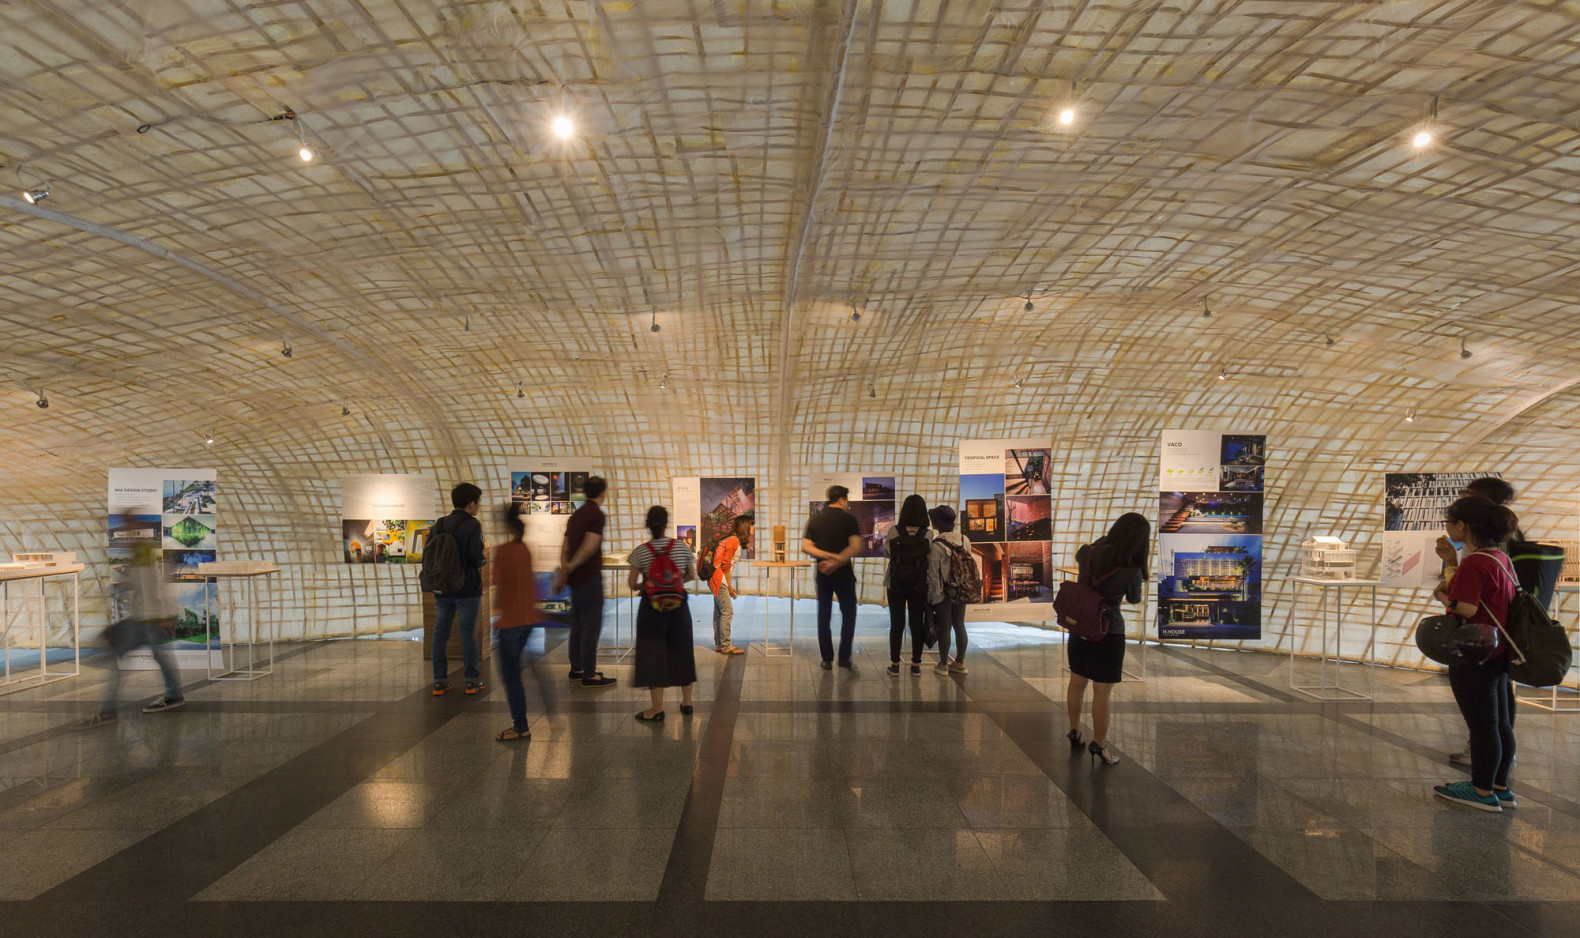 Saigon Architects Exhibition 2016, Saigon Architects Exhibition by HandHome, Paper Cocoon Pavilion by a21 studio, cocoon pavilion, bamboo and paper pavilion, bamboo pavilion, papier mâché pavilion